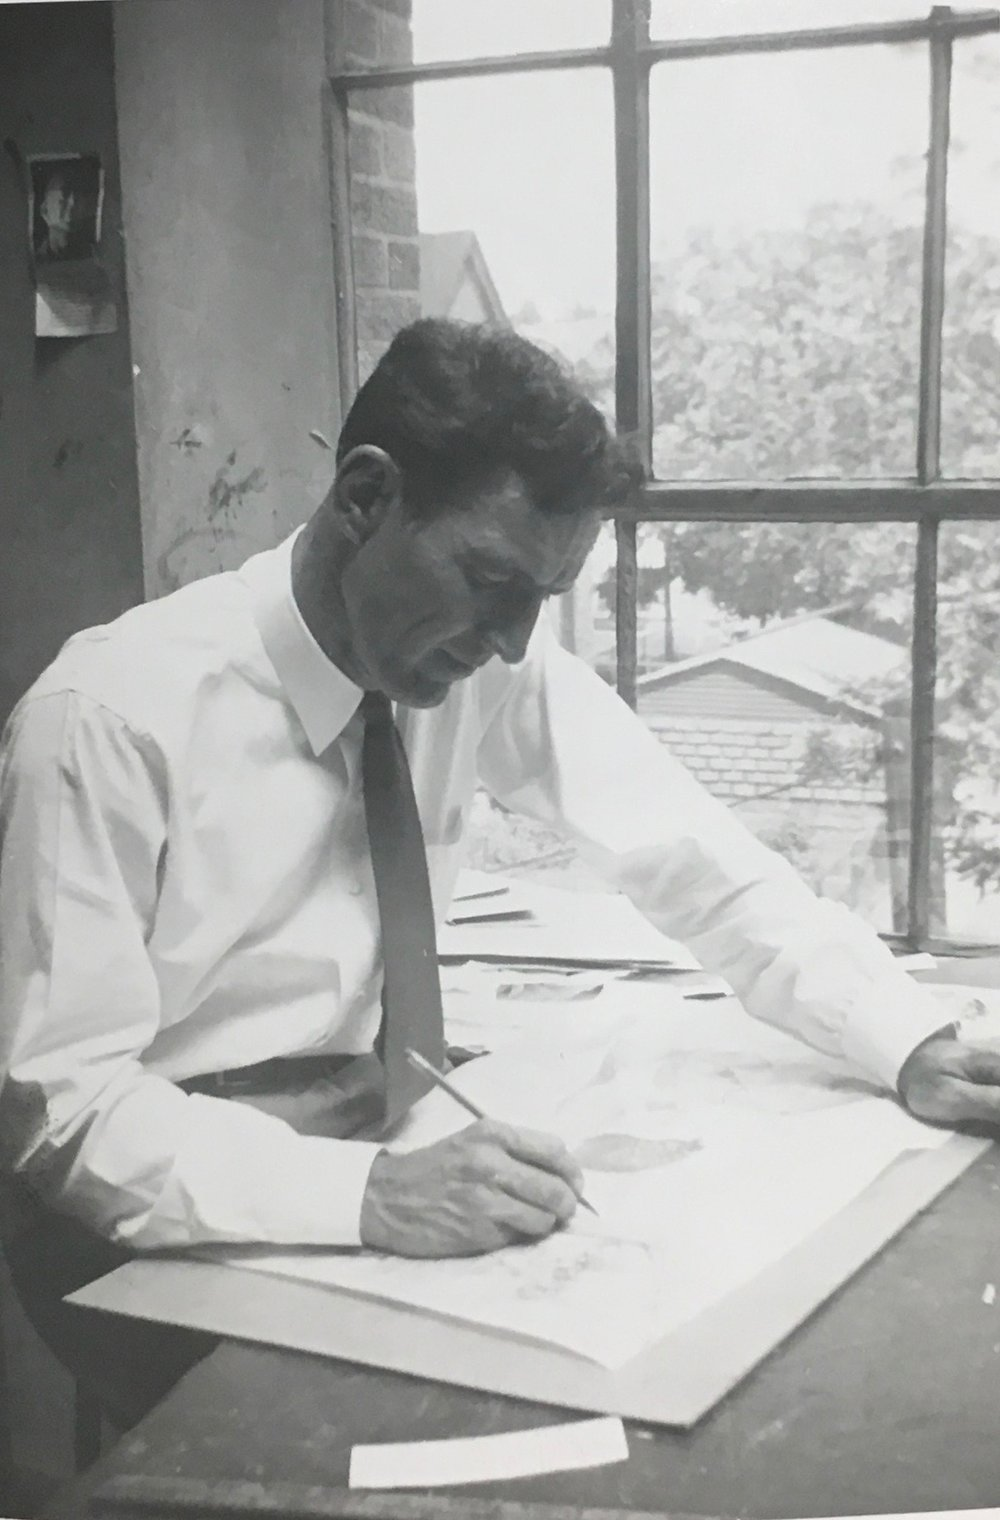 REW instructing at John Herron, 1955